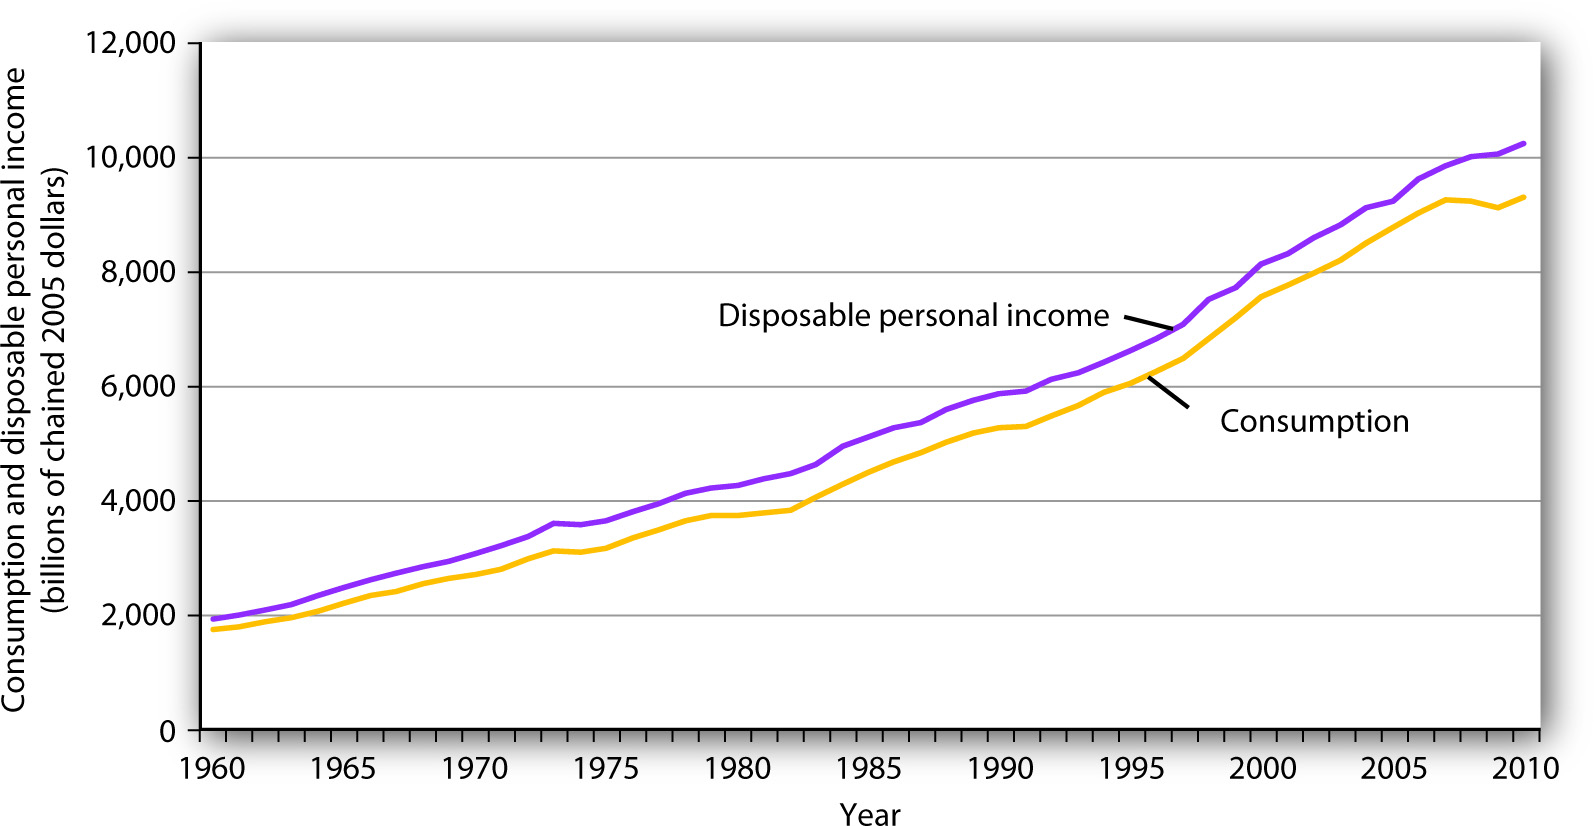 The Relationship Between Consumption and Disposable Personal Income. Plots of consumption and disposable personal income over time suggest that consumption increases as disposable personal income increases.